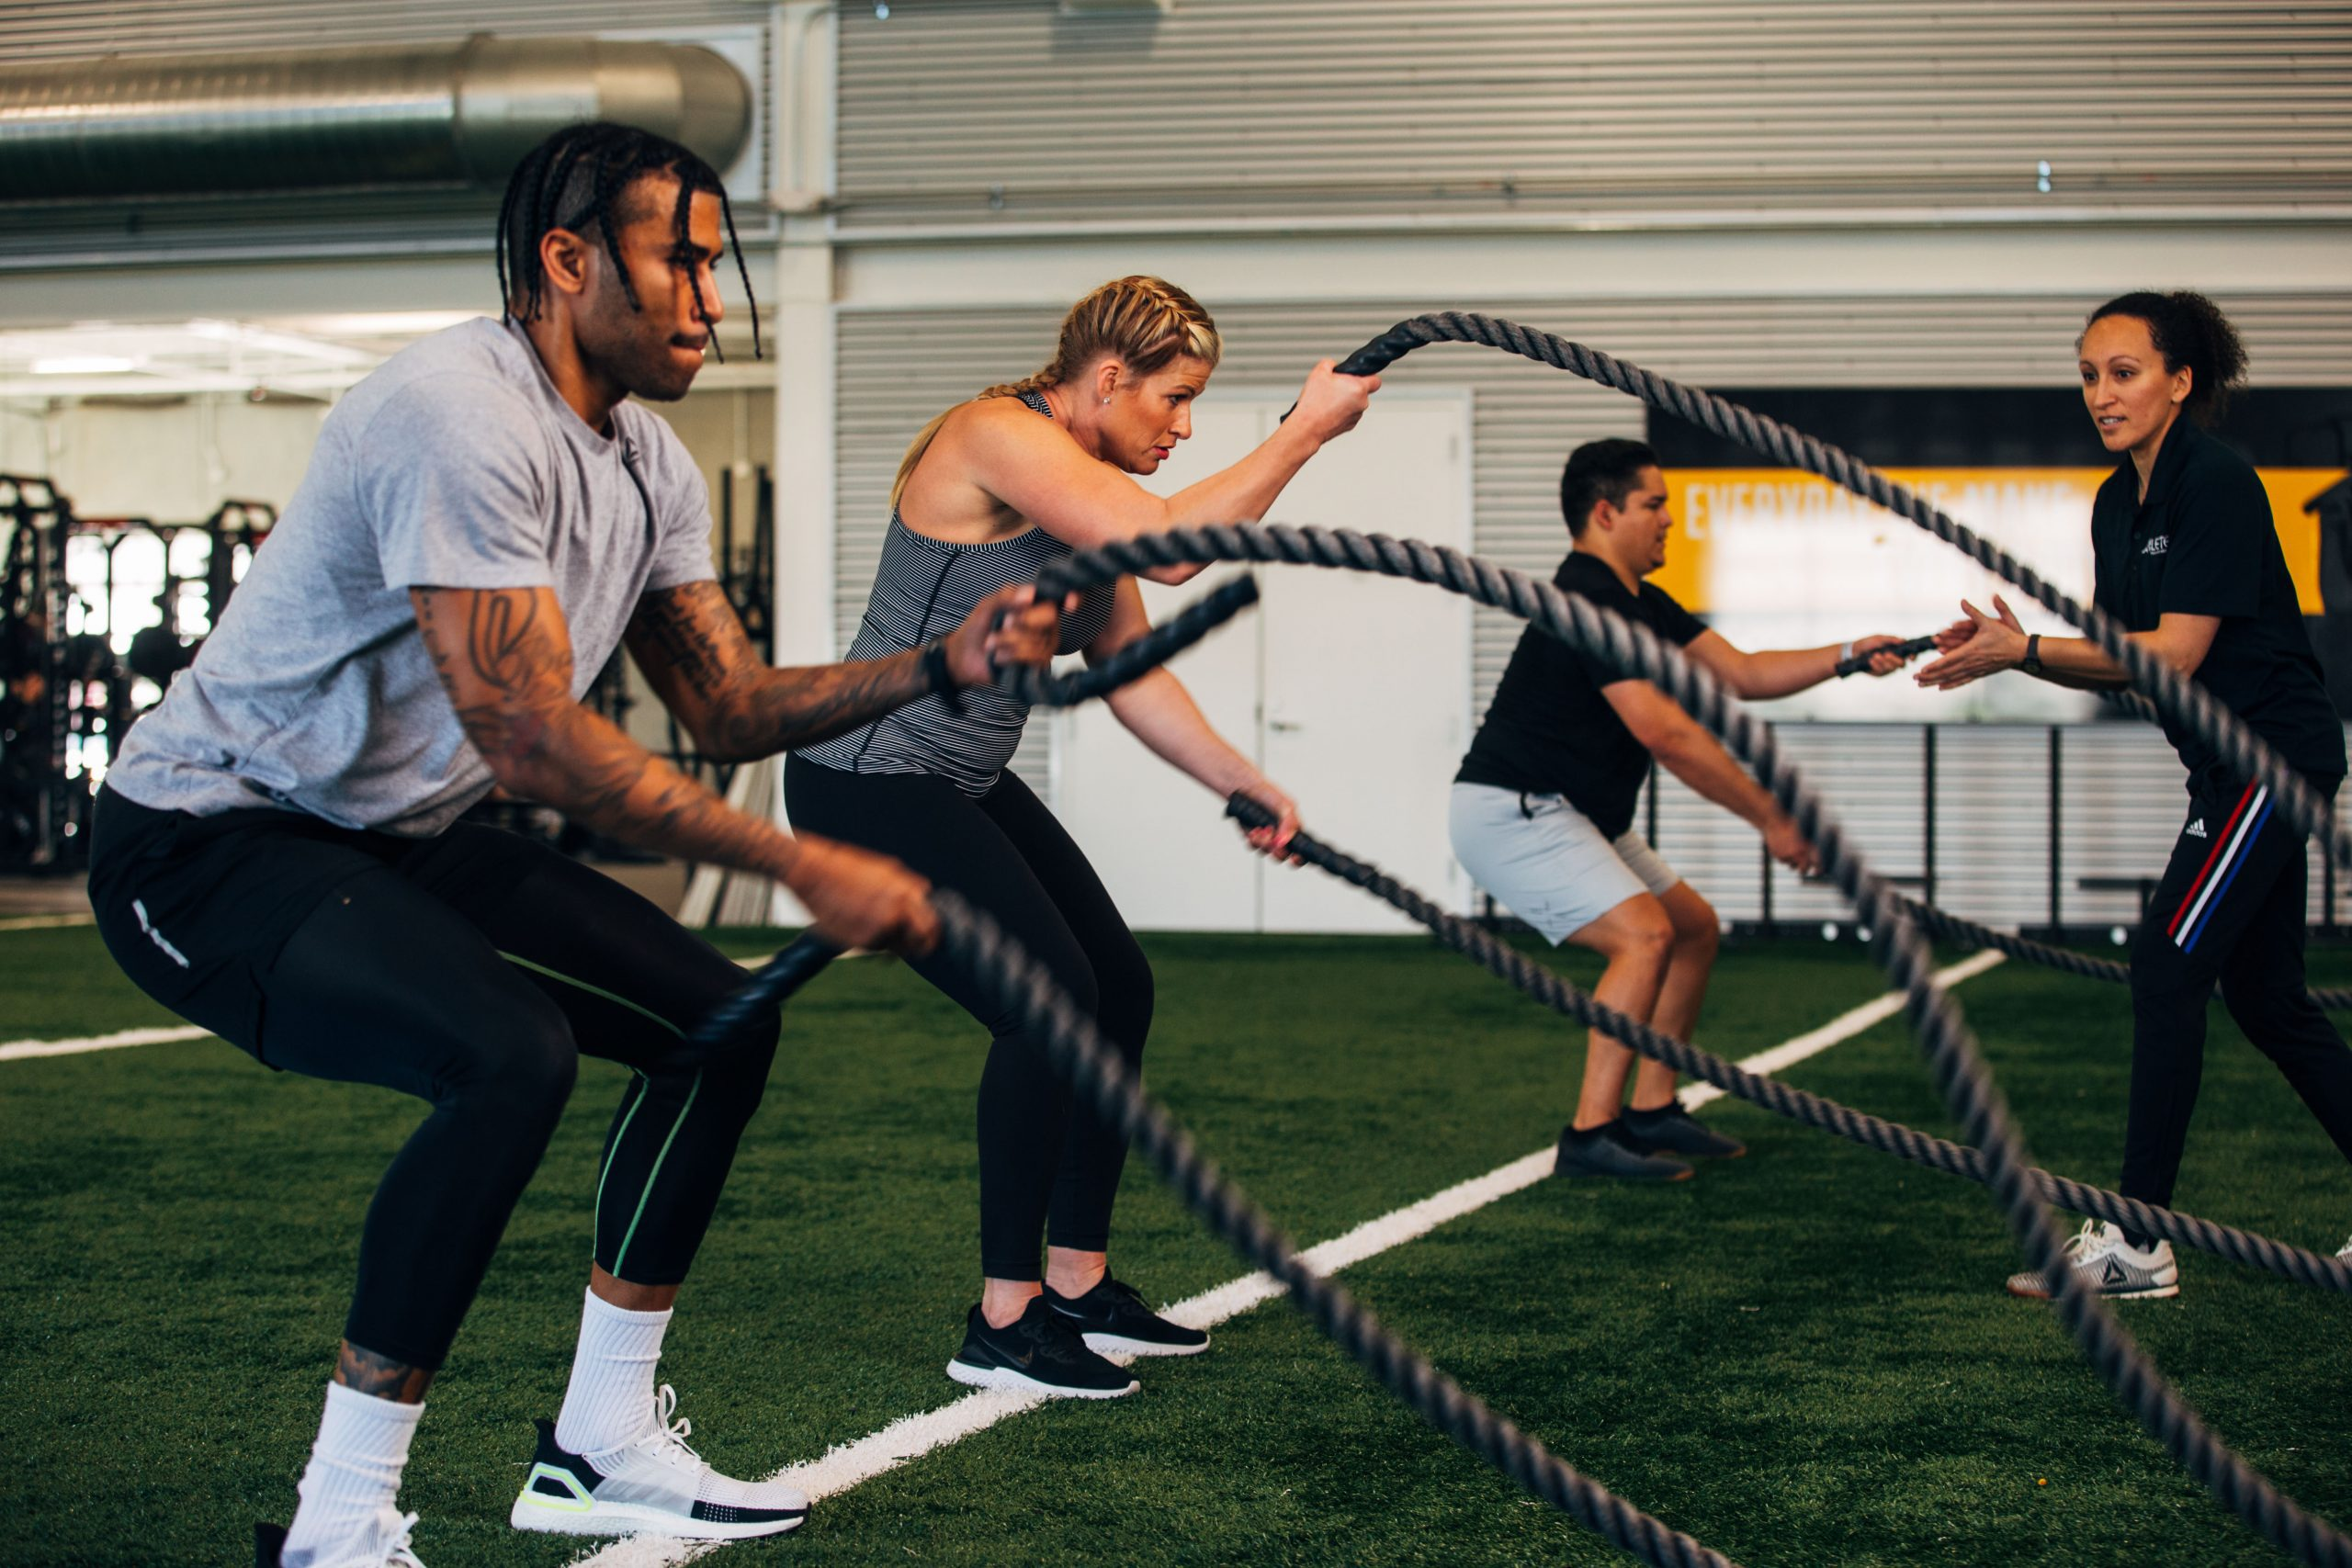 Get Moving this Spring:: Why Athlete Training & Health is the Place to Be